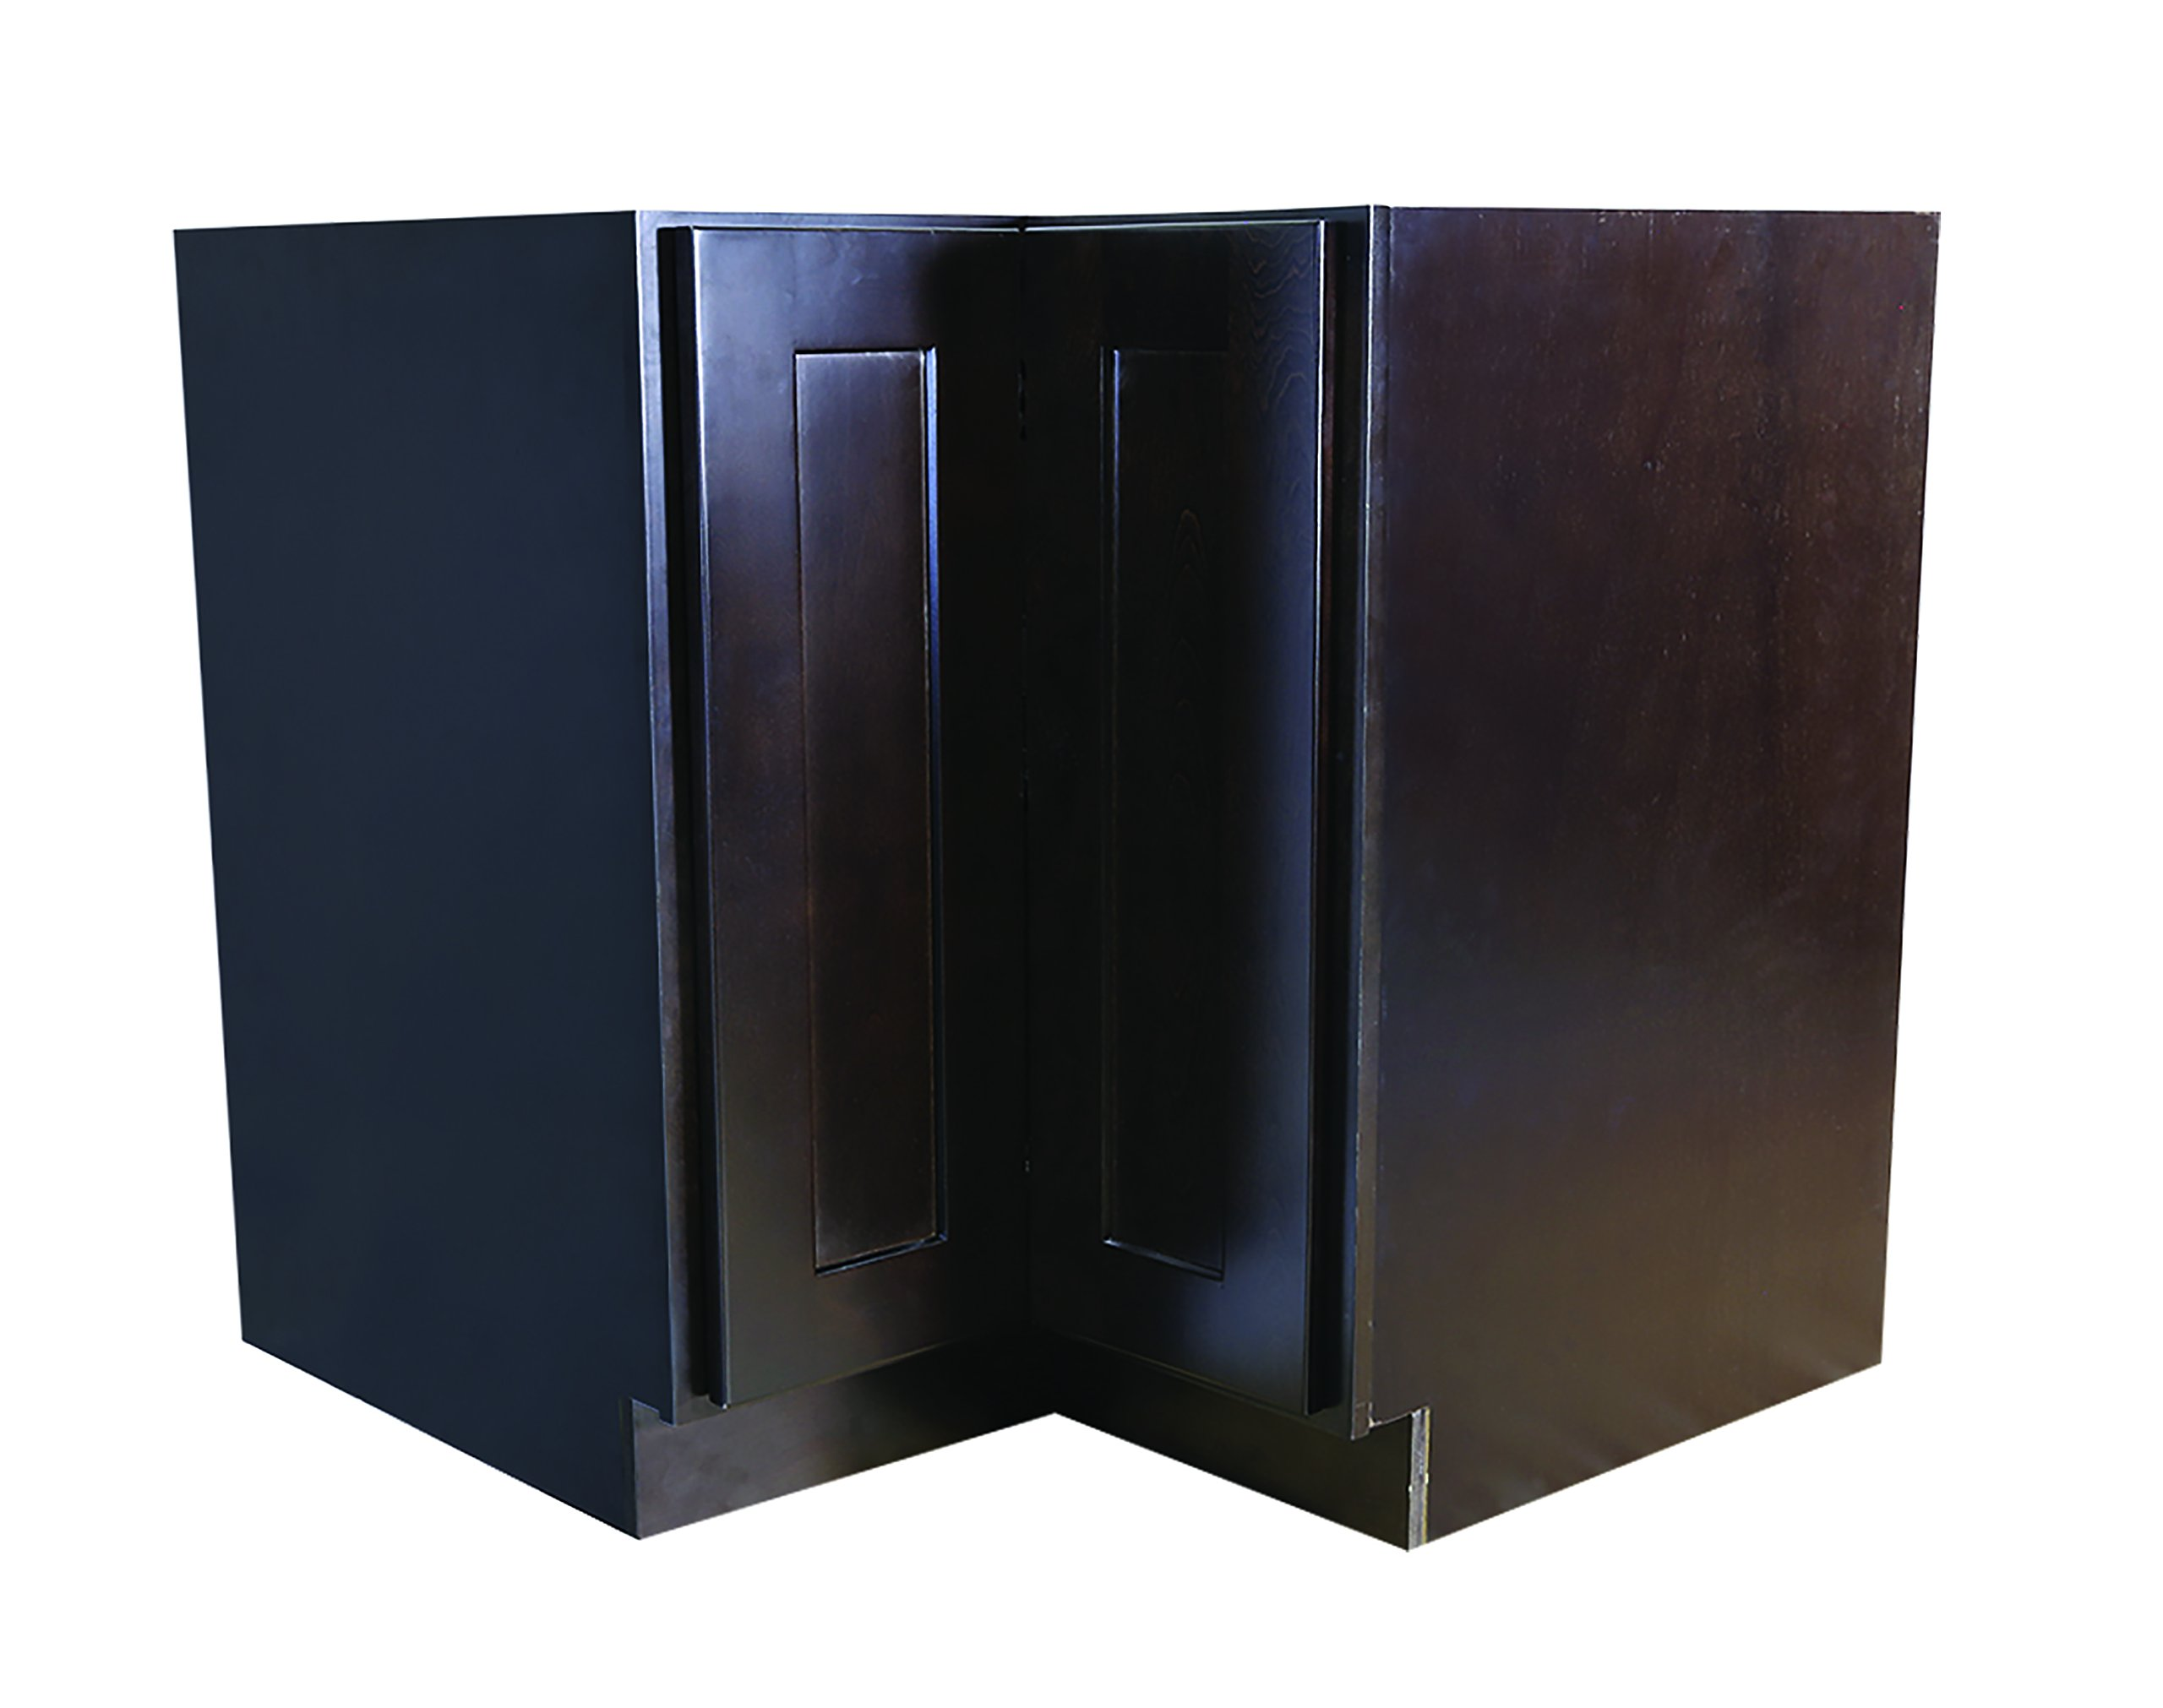 Design House 562025 Brookings 36-Inch Lazy Susan Cabinet, Espresso Shaker by Design House